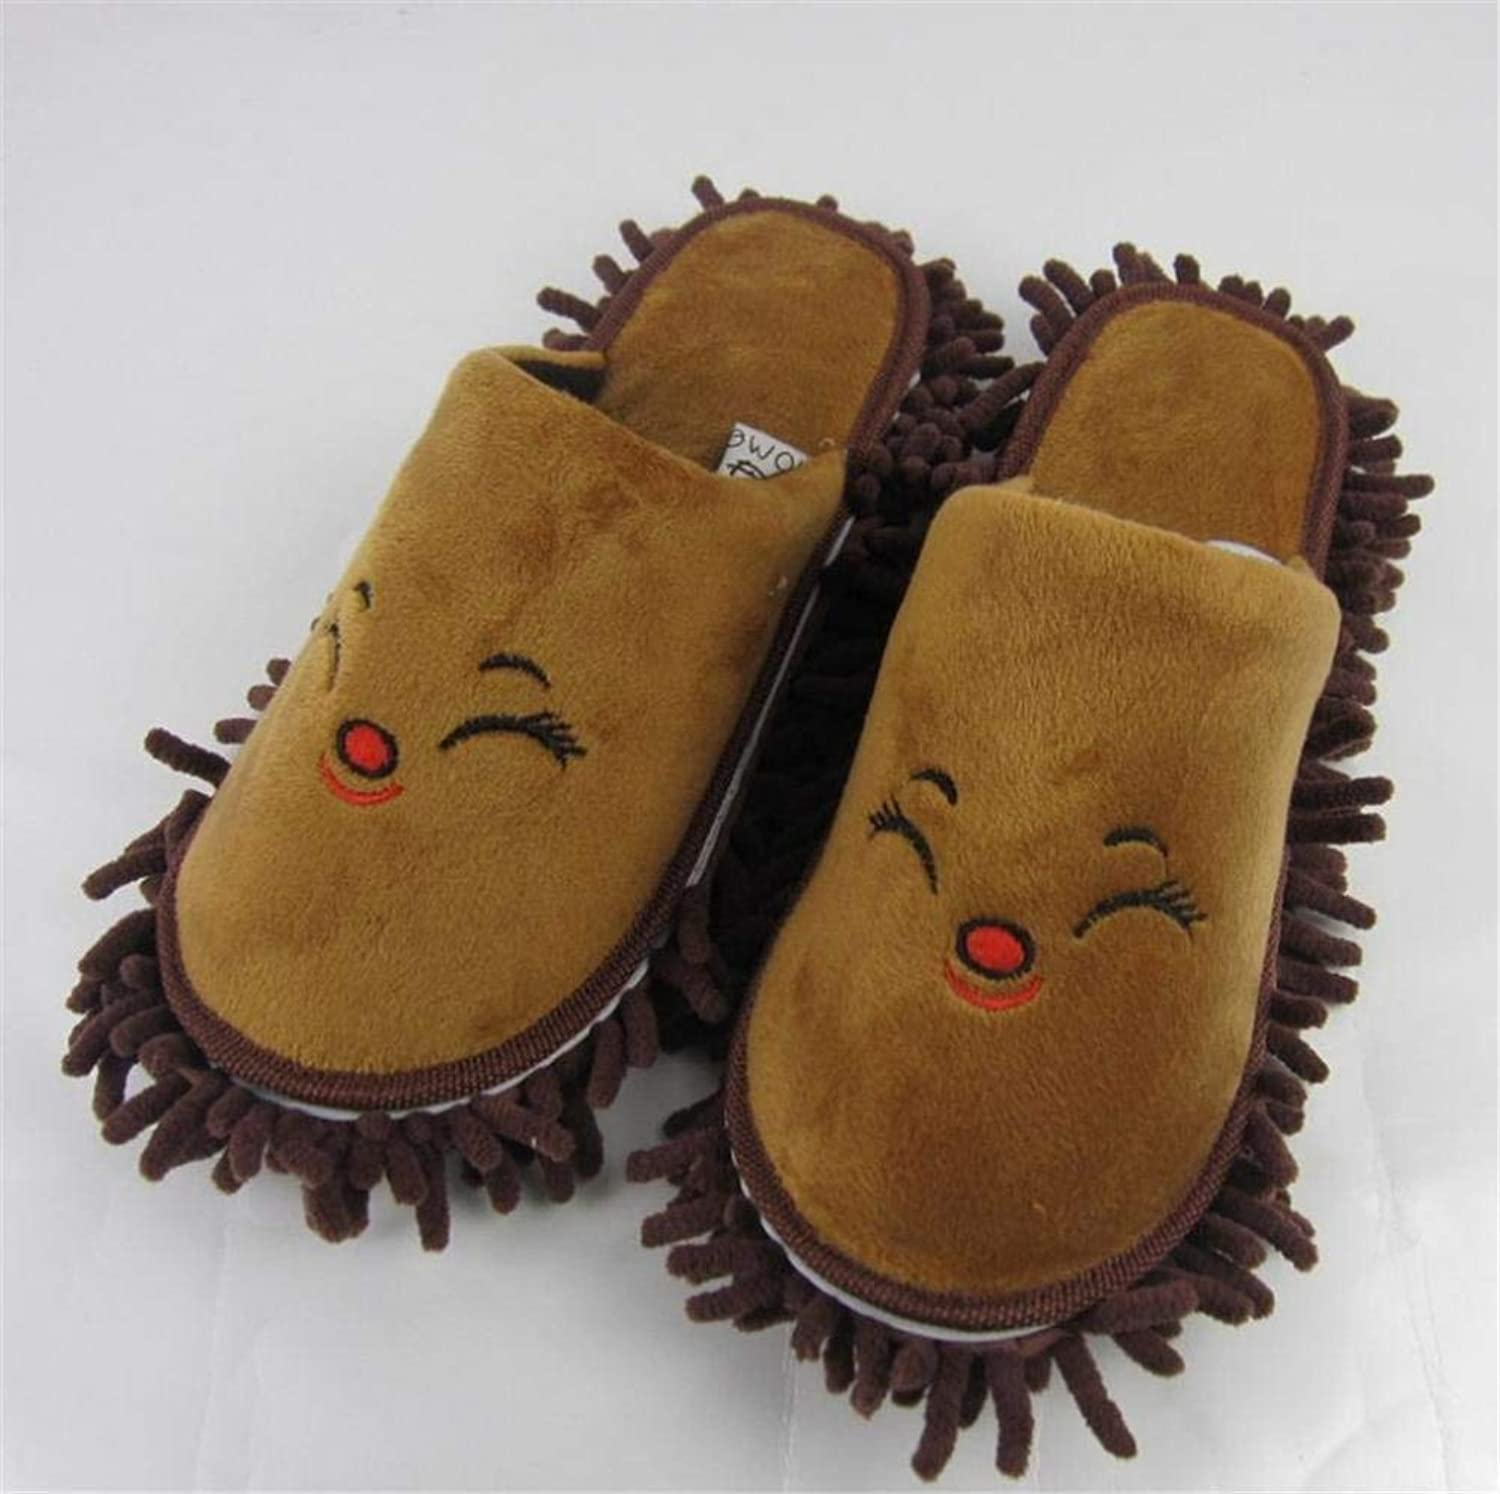 JaHGDU Women 's Home Cotton Slippers Indoor Keep Warm Casual Slippers Soild color Beige Brown Pink Personality Quality for Women